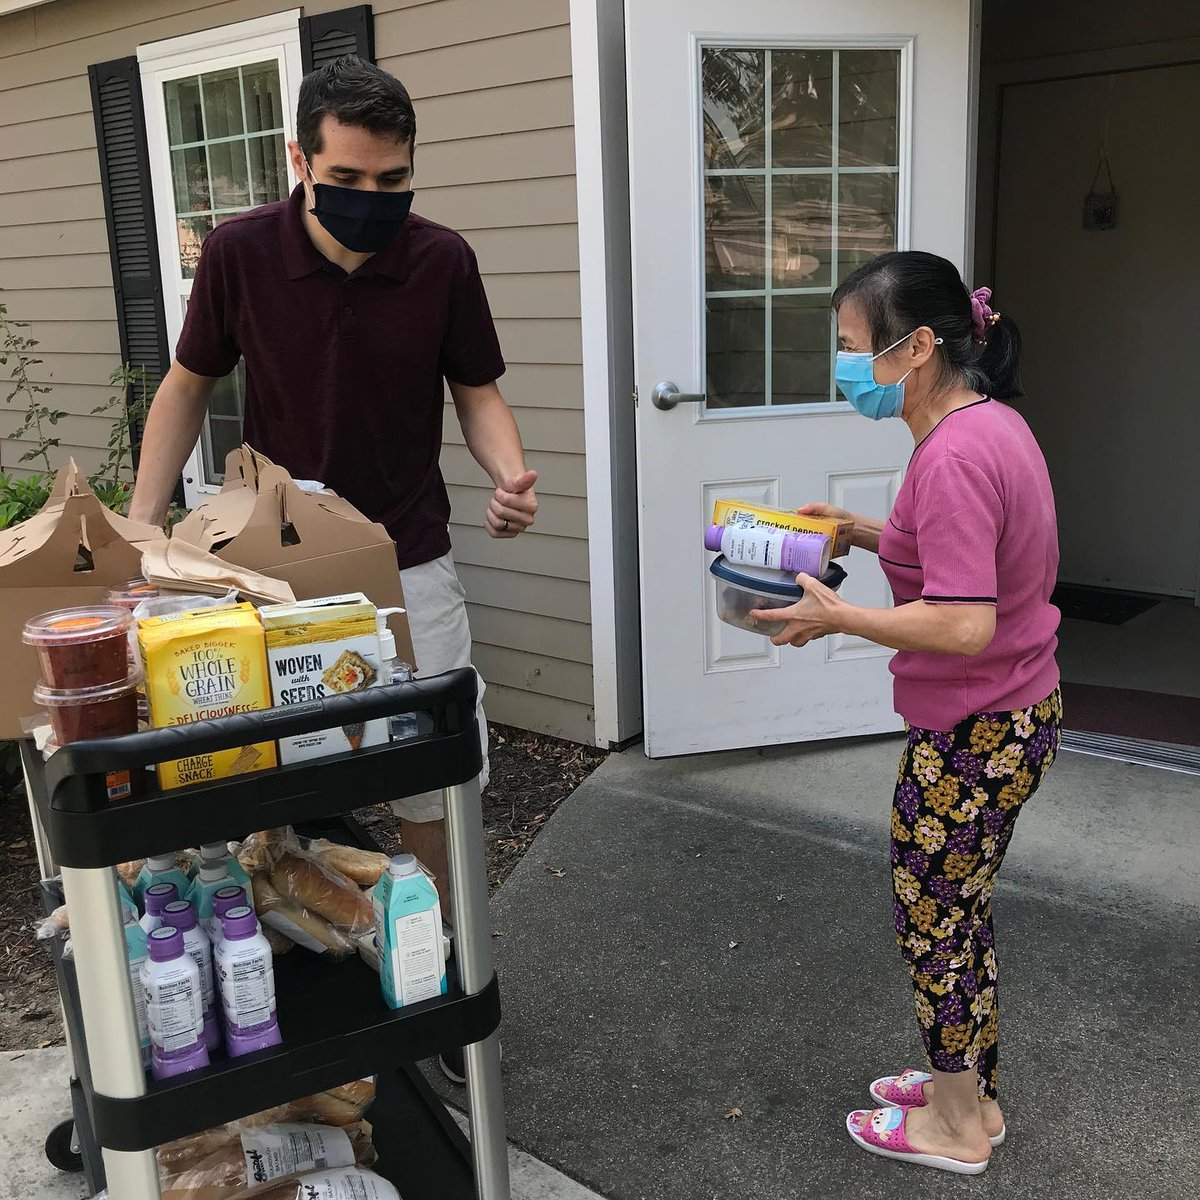 Our @sacstate interns are integral to #CHOCServices' work across our #affordablehousing properties. We're so grateful for their ongoing assistance during these challenging times! Full story on FB:   #covid19 #sacramento #chochousing #community #wearamask